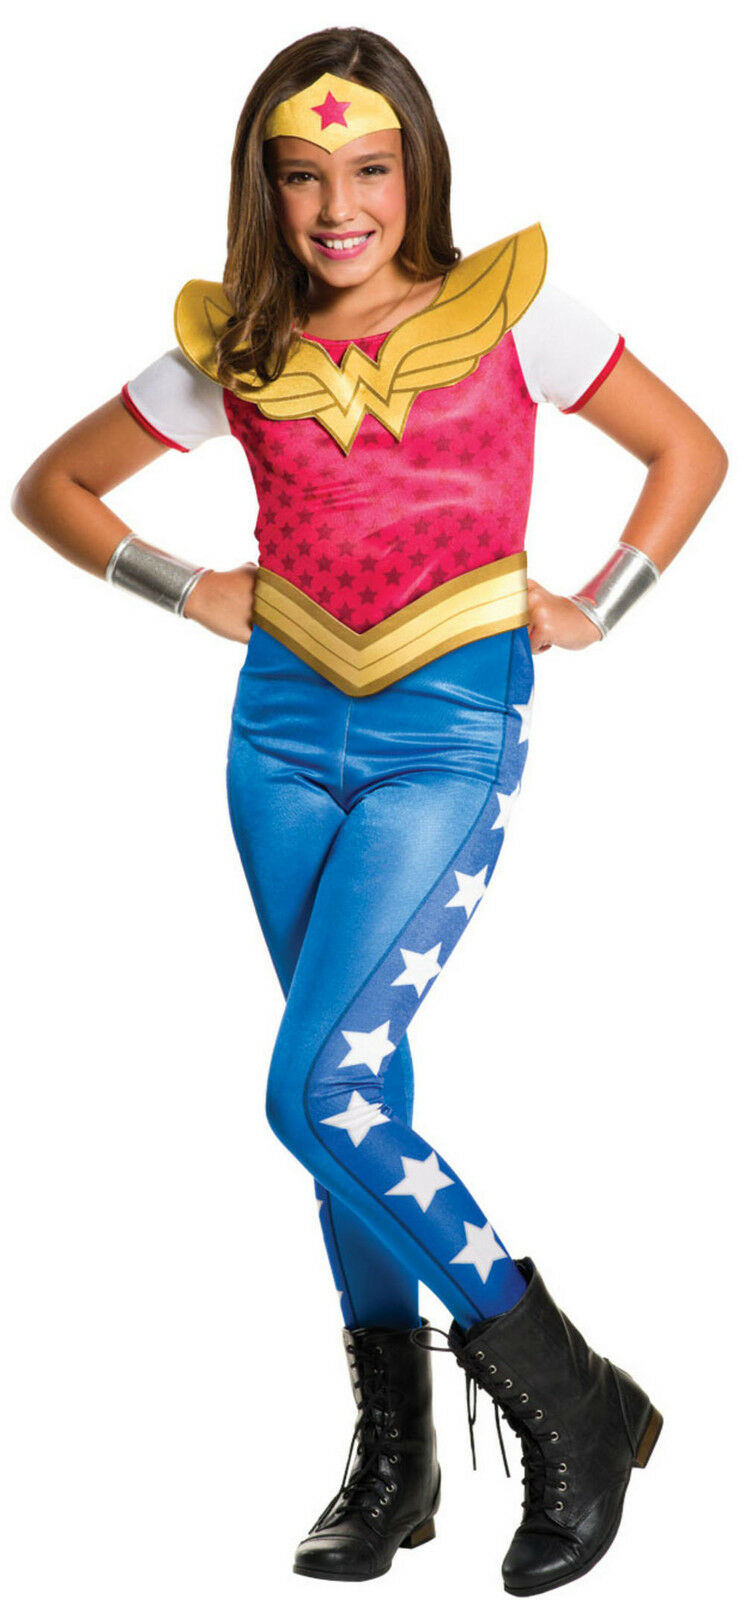 negozio ufficiale nuovo prodotto migliore qualità Details about Girls Wonder Woman Superhero Comic Book Day Week Fancy Dress  Costume Outfit 3-10